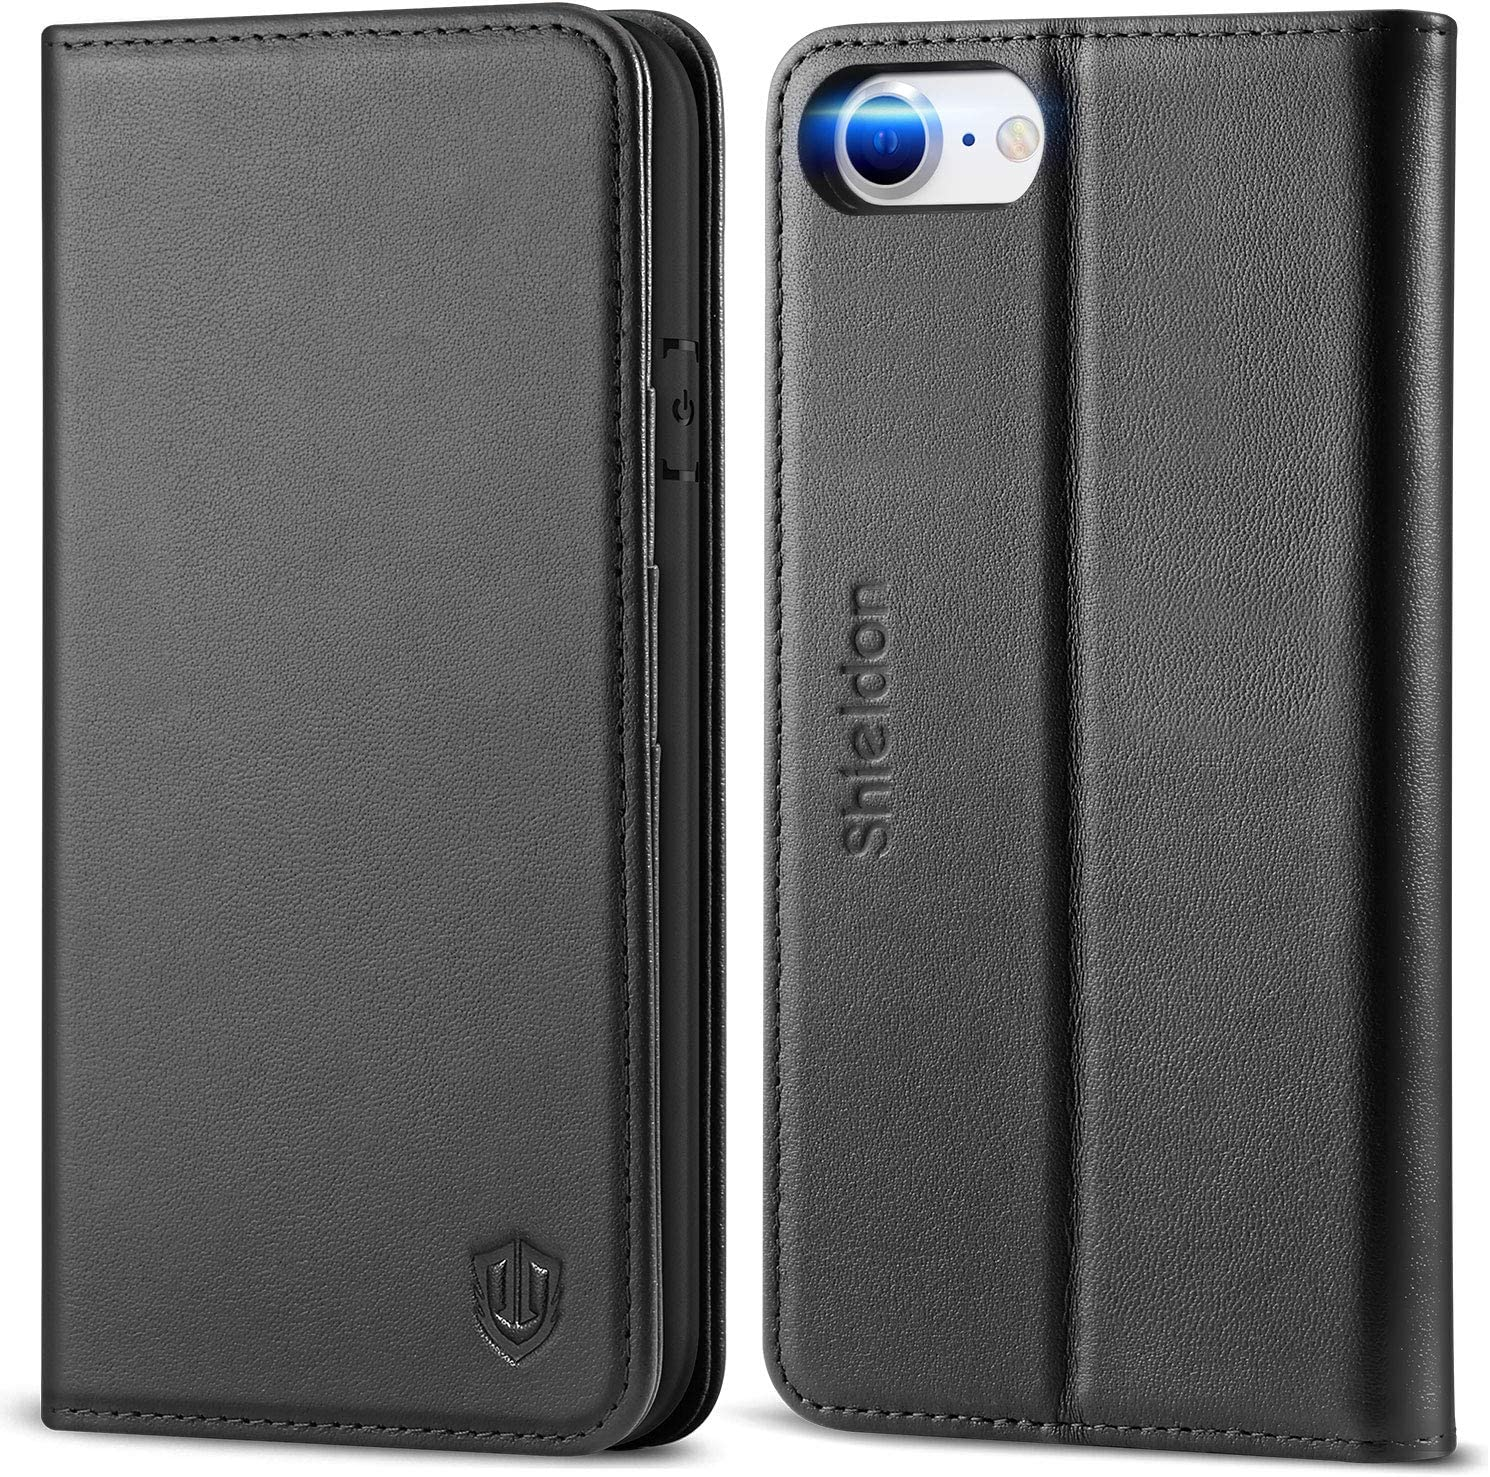 "SHIELDON iPhone SE 2020 Case, iPhone 8 Wallet Case Genuine Leather [Card Holder] Magnetic Closure Stand Flip Book Cover Shockproof Protection Case Compatible with iPhone SE2/8/7 (4.7"") - Black"